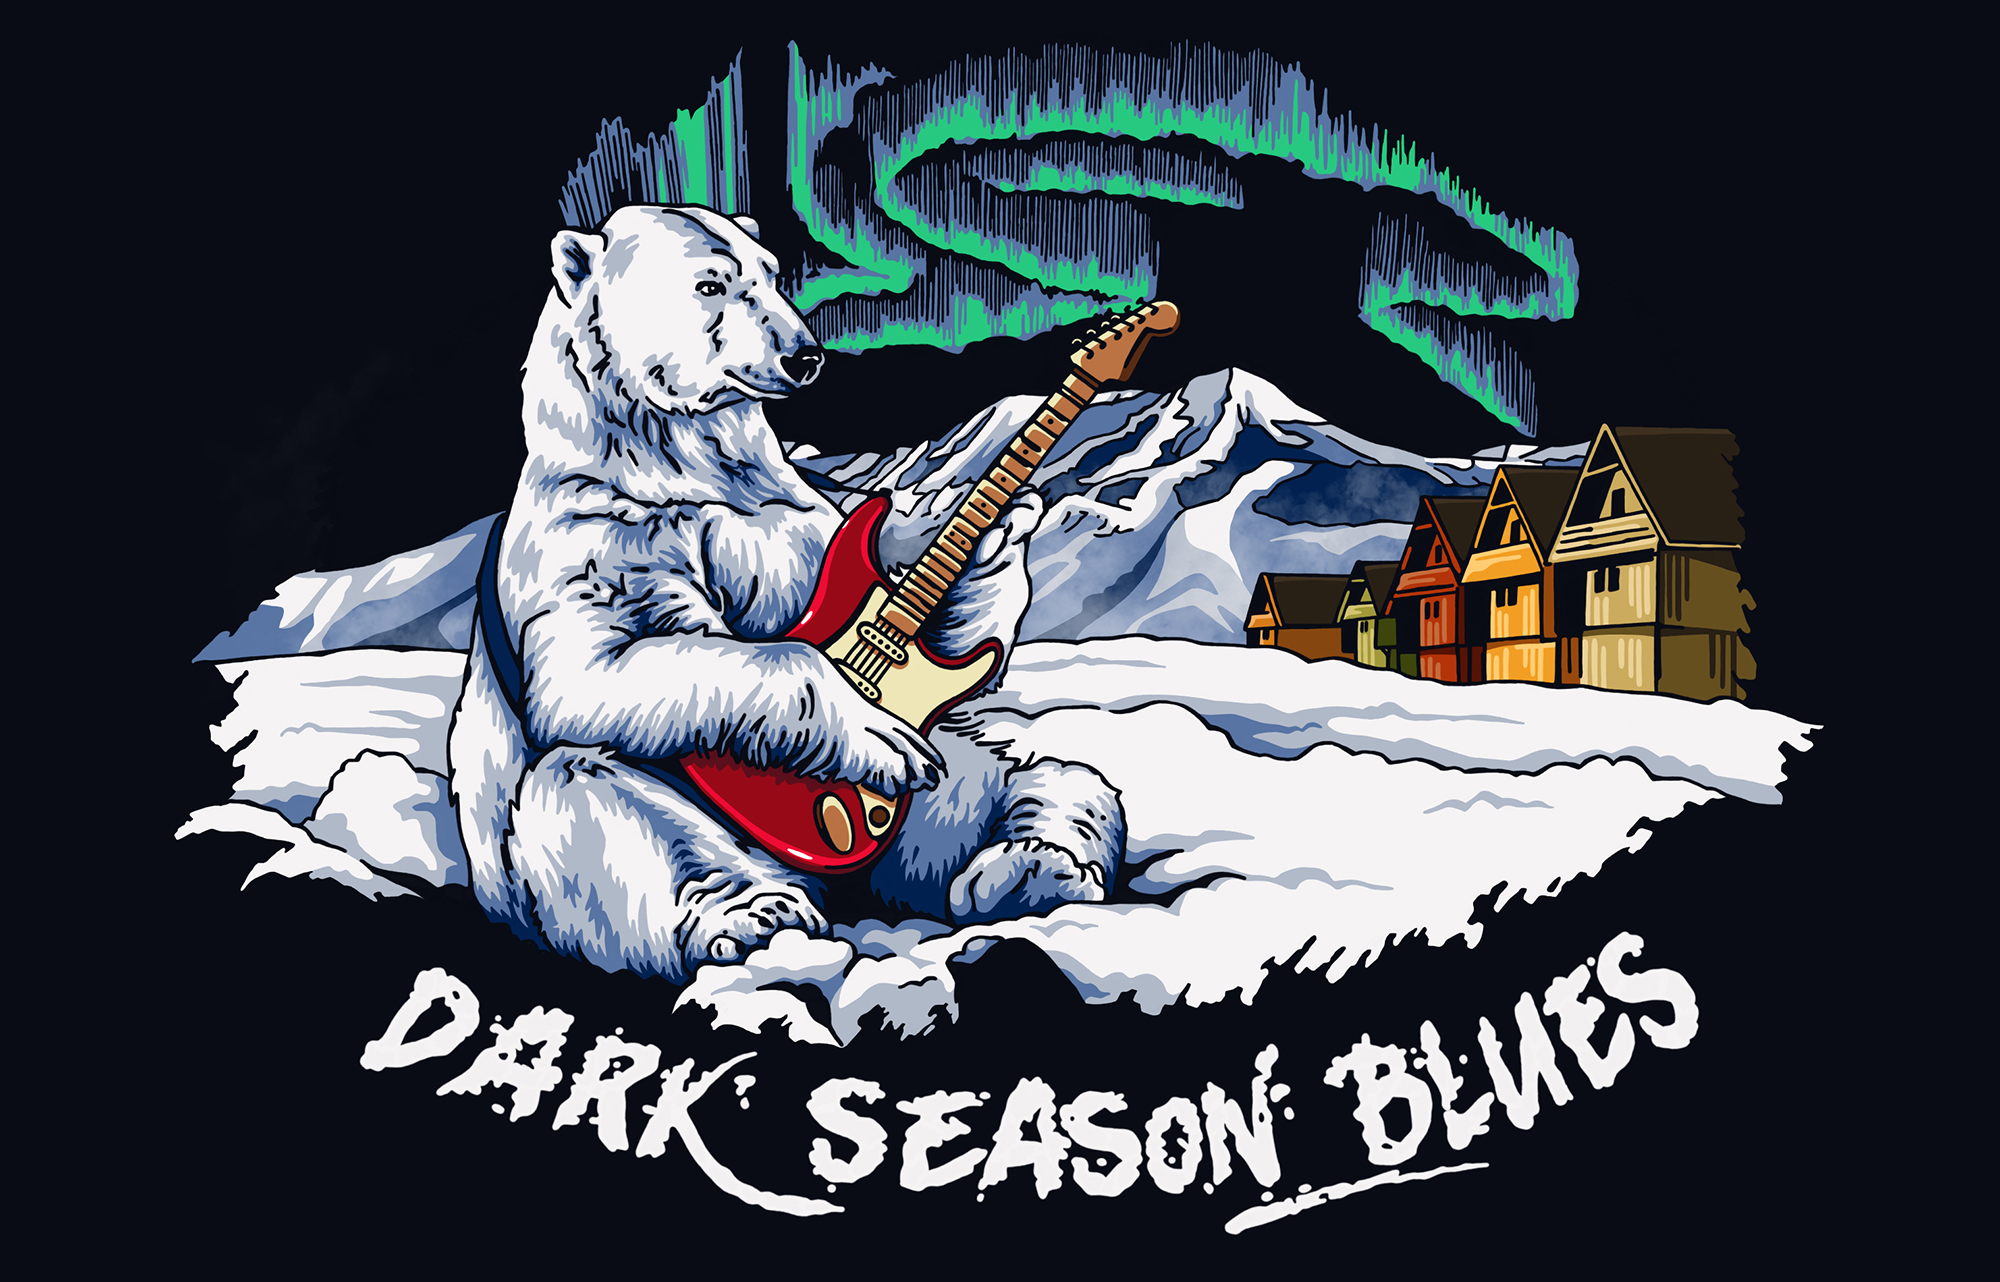 Dark-Season-Blues-2017-2000x1282.jpg